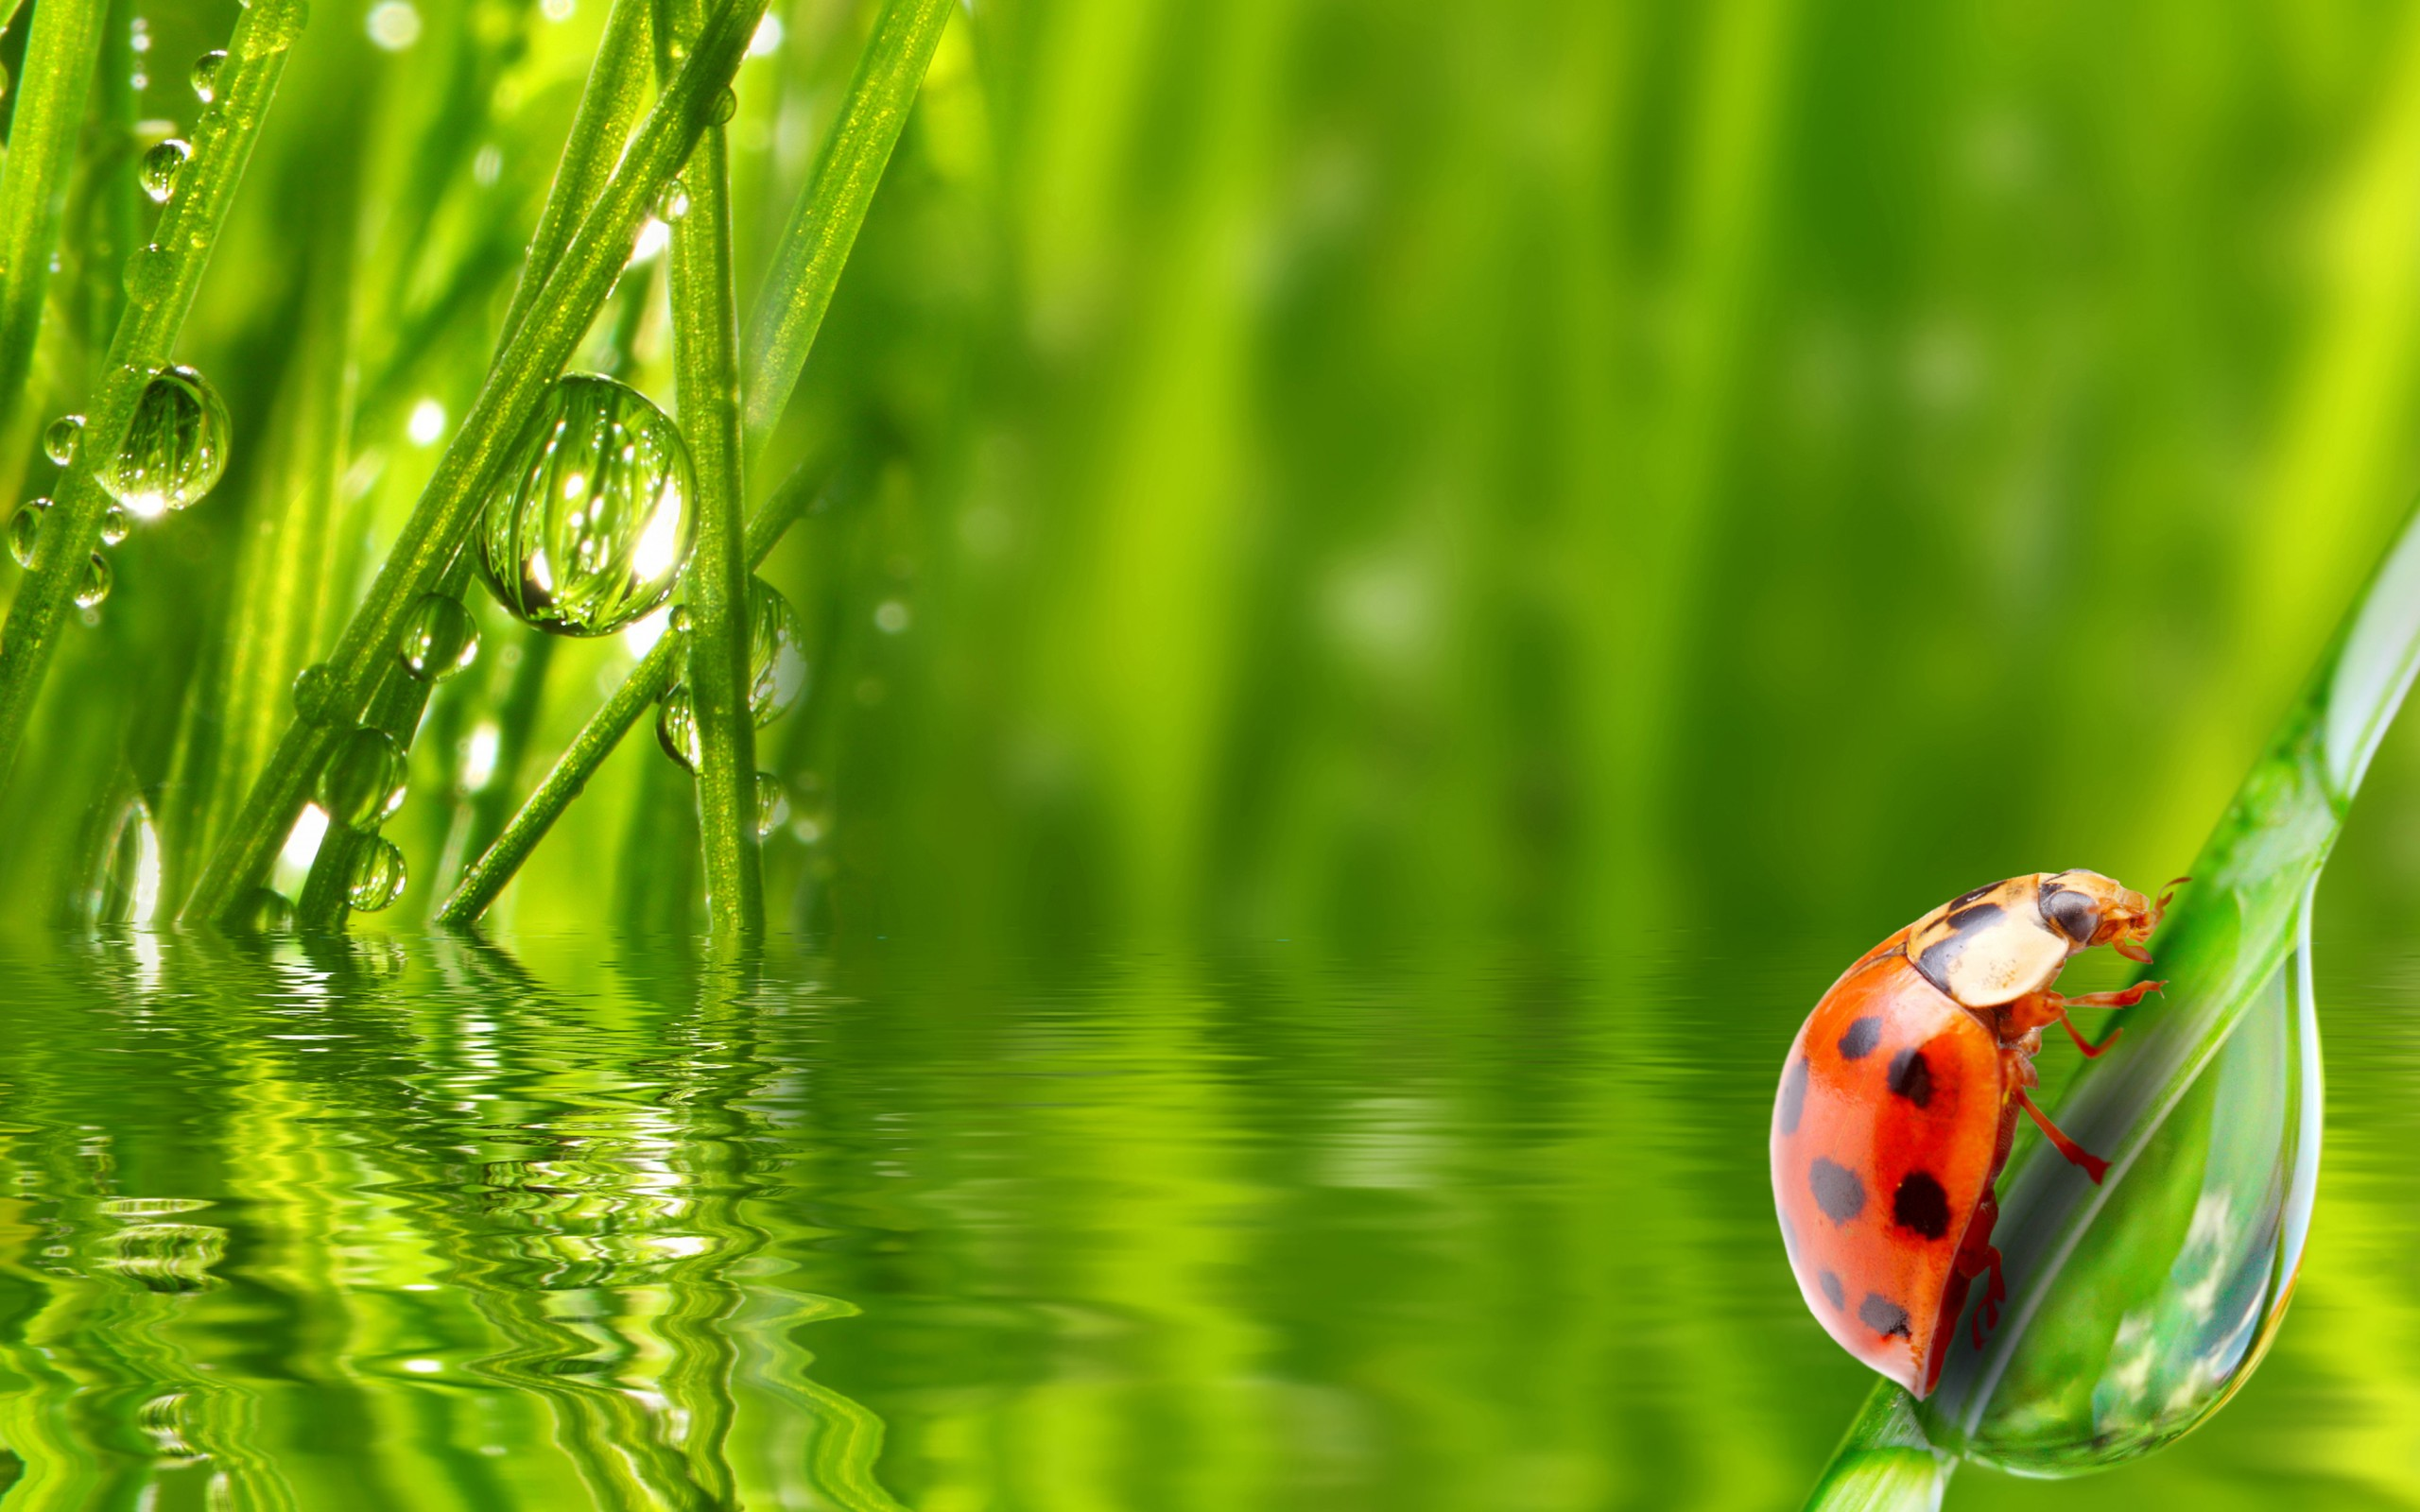 ladybug insect grass water dew morning drop wallpaper | 2560x1600